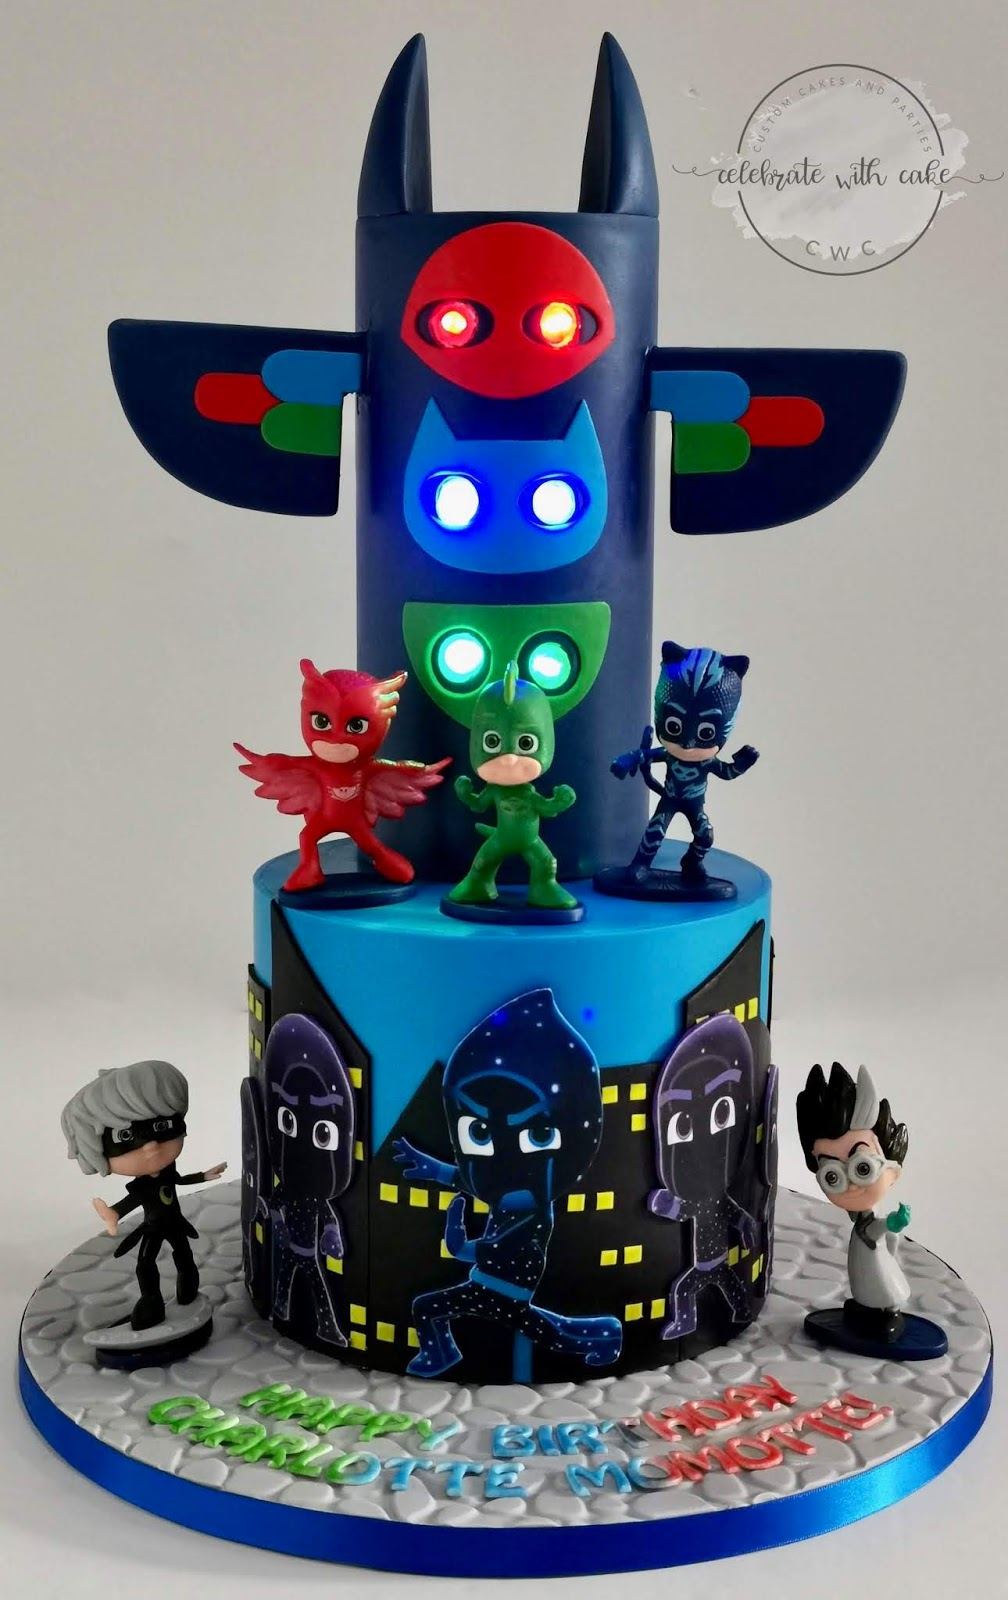 celebrate with cake!: pj masks with hq cake